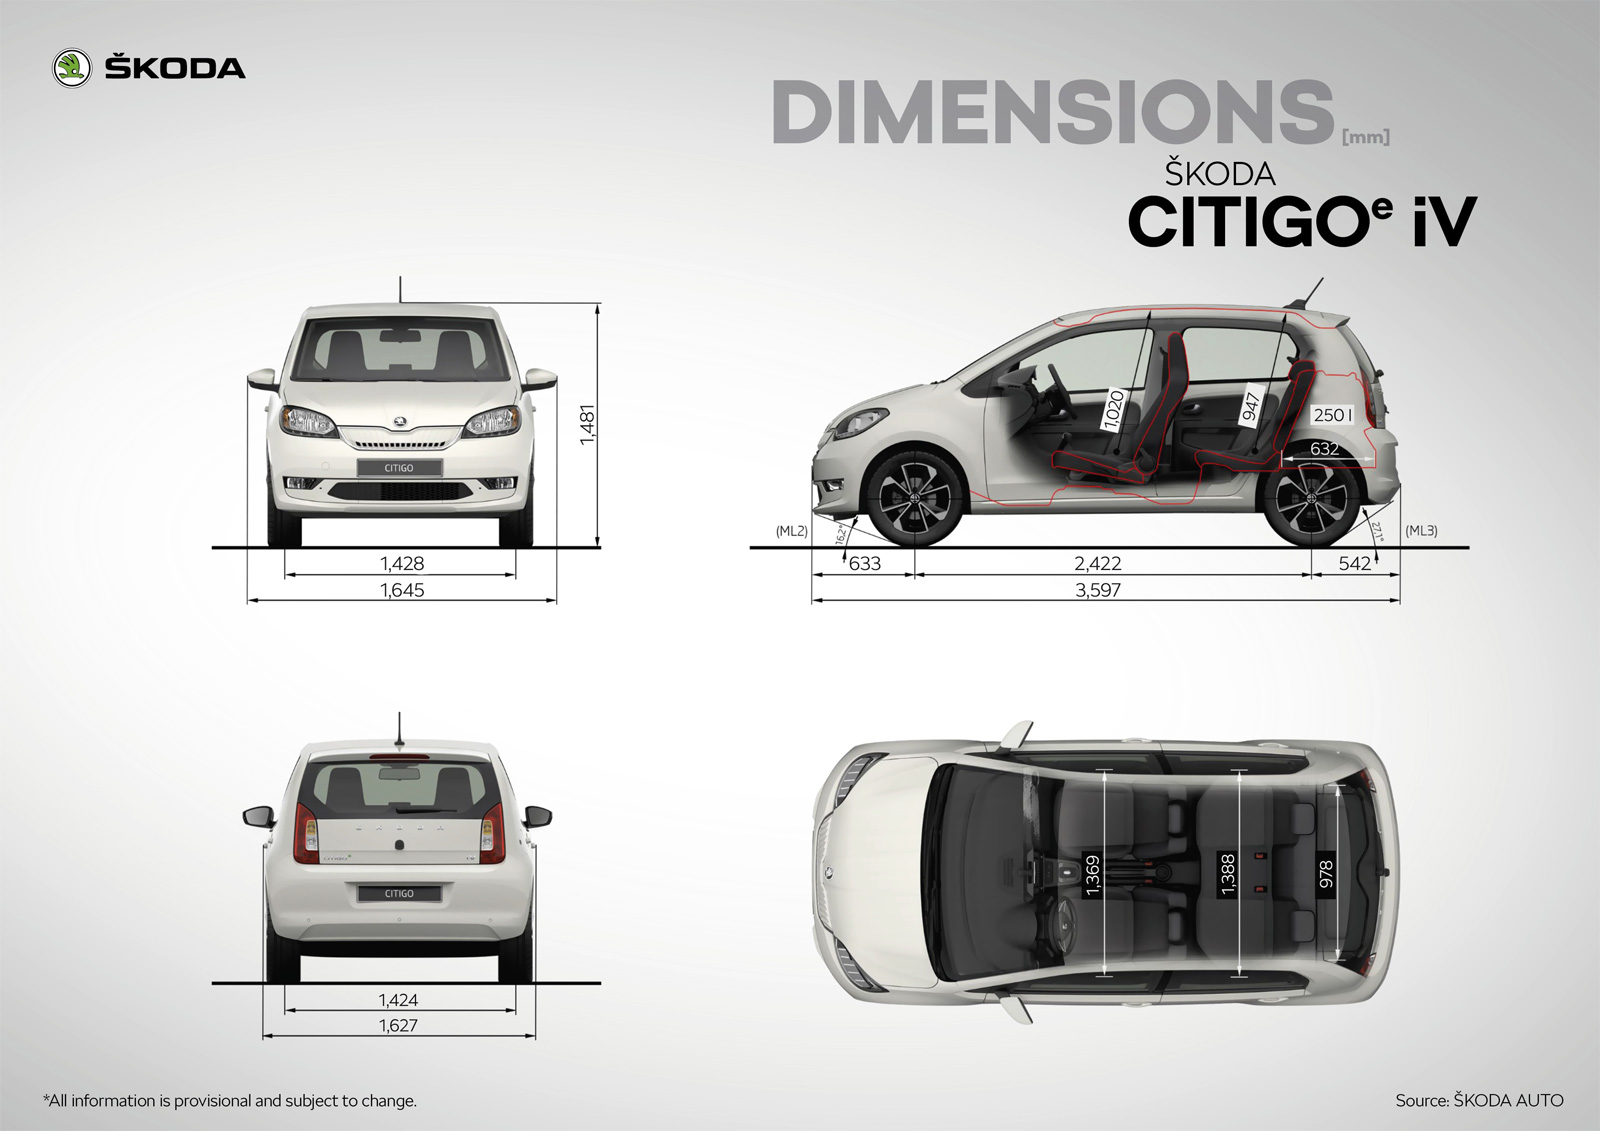 Skoda Citigoe Iv Goes Official With A 61 Kw Motor And A 36 8 Kwh